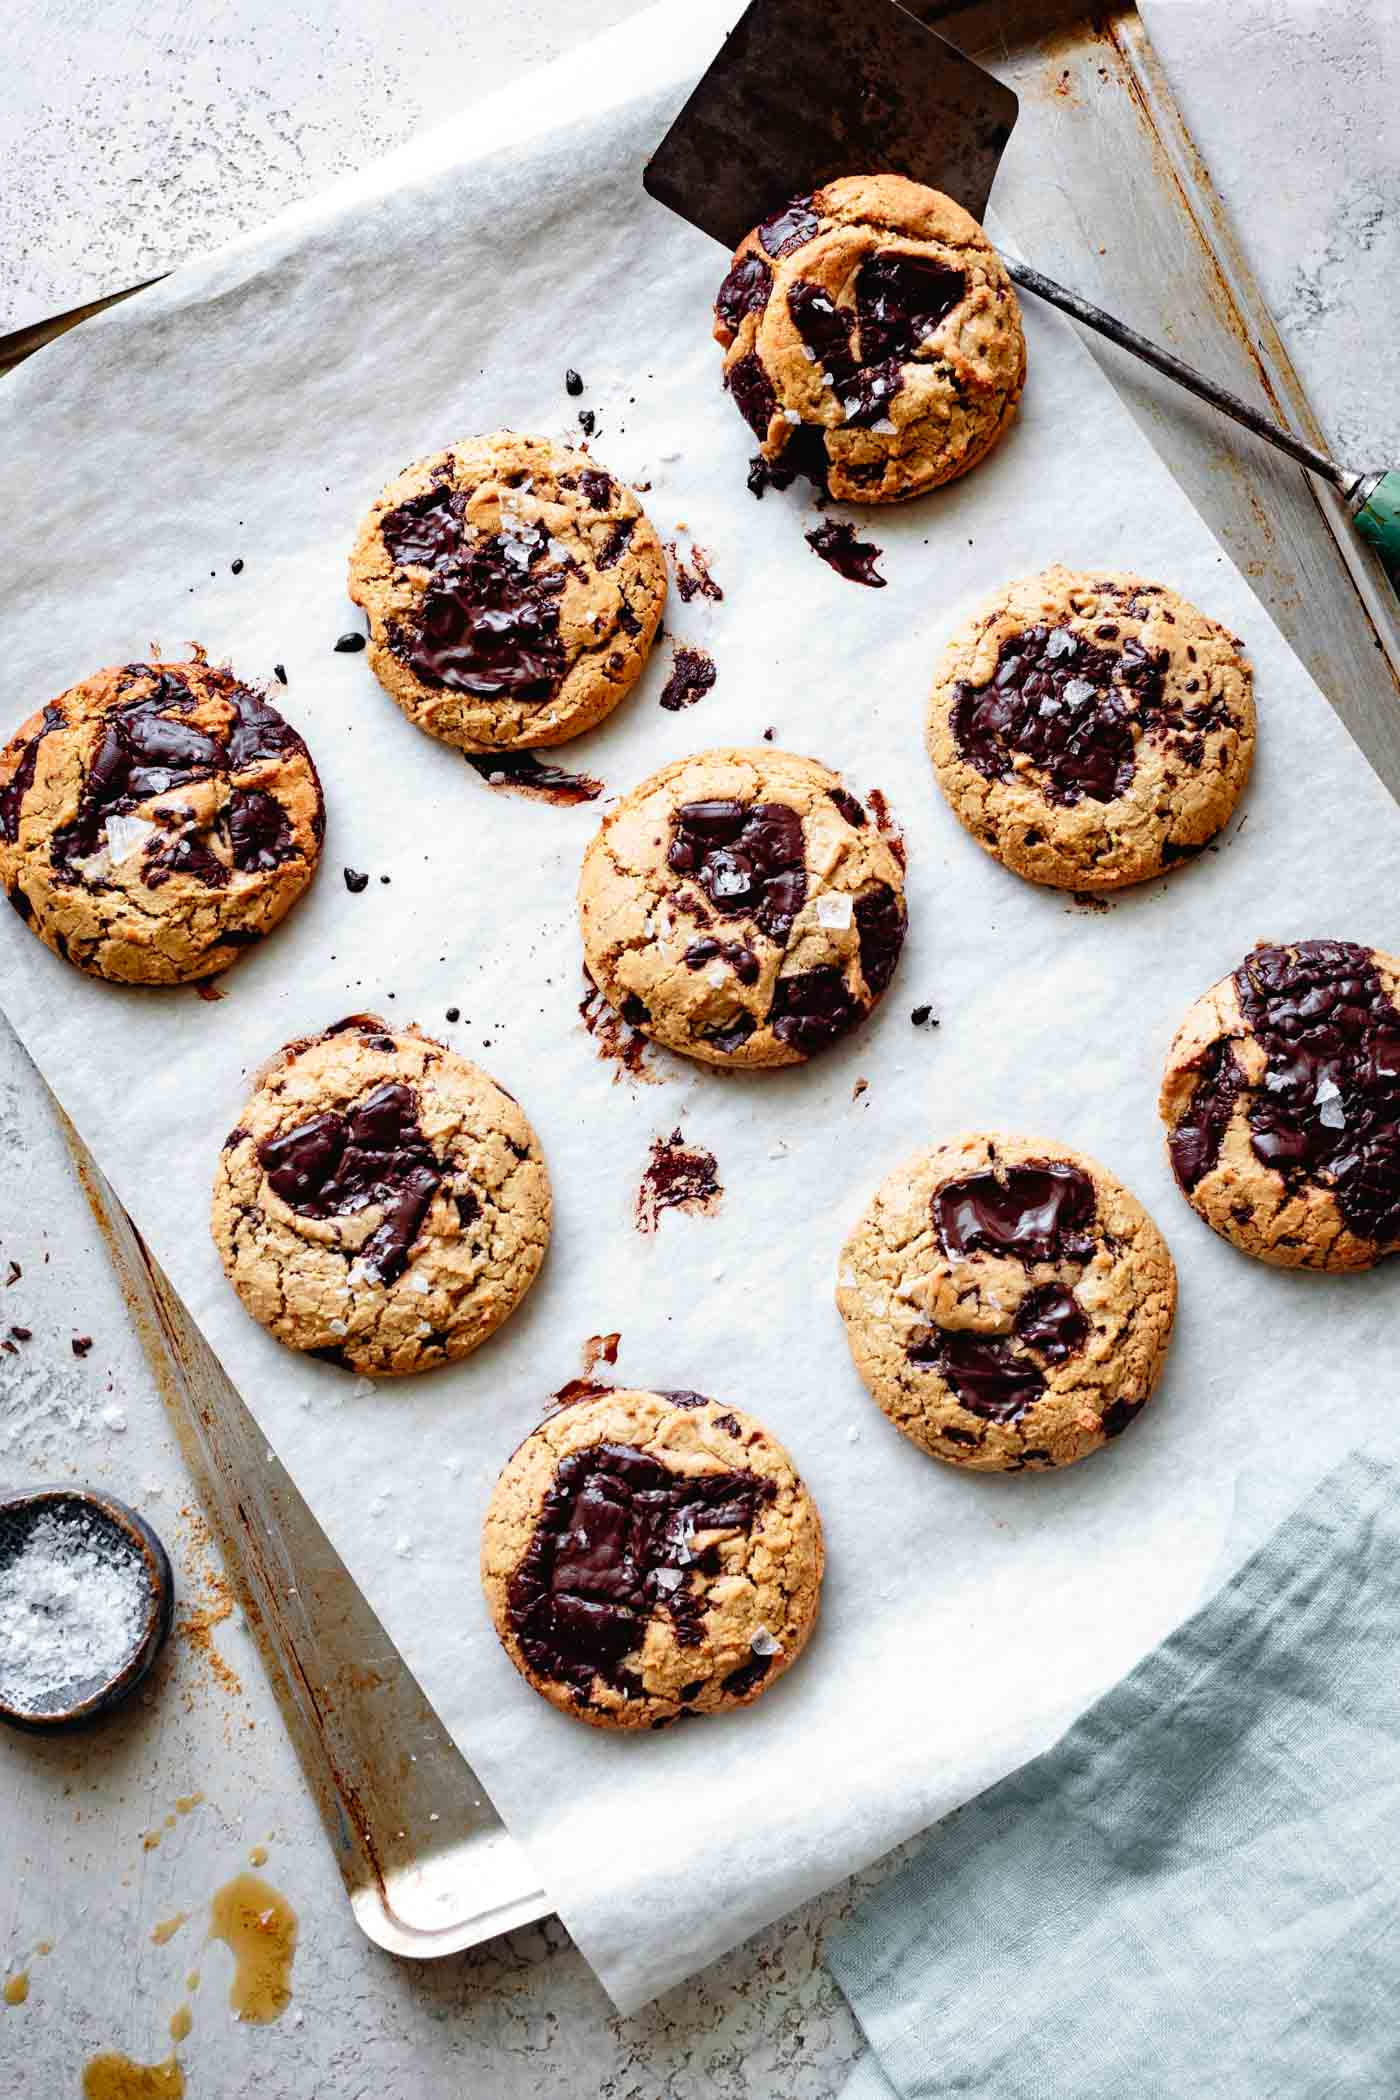 thick and chewy vegan paleo chocolate chip cookies, fresh out of the oven